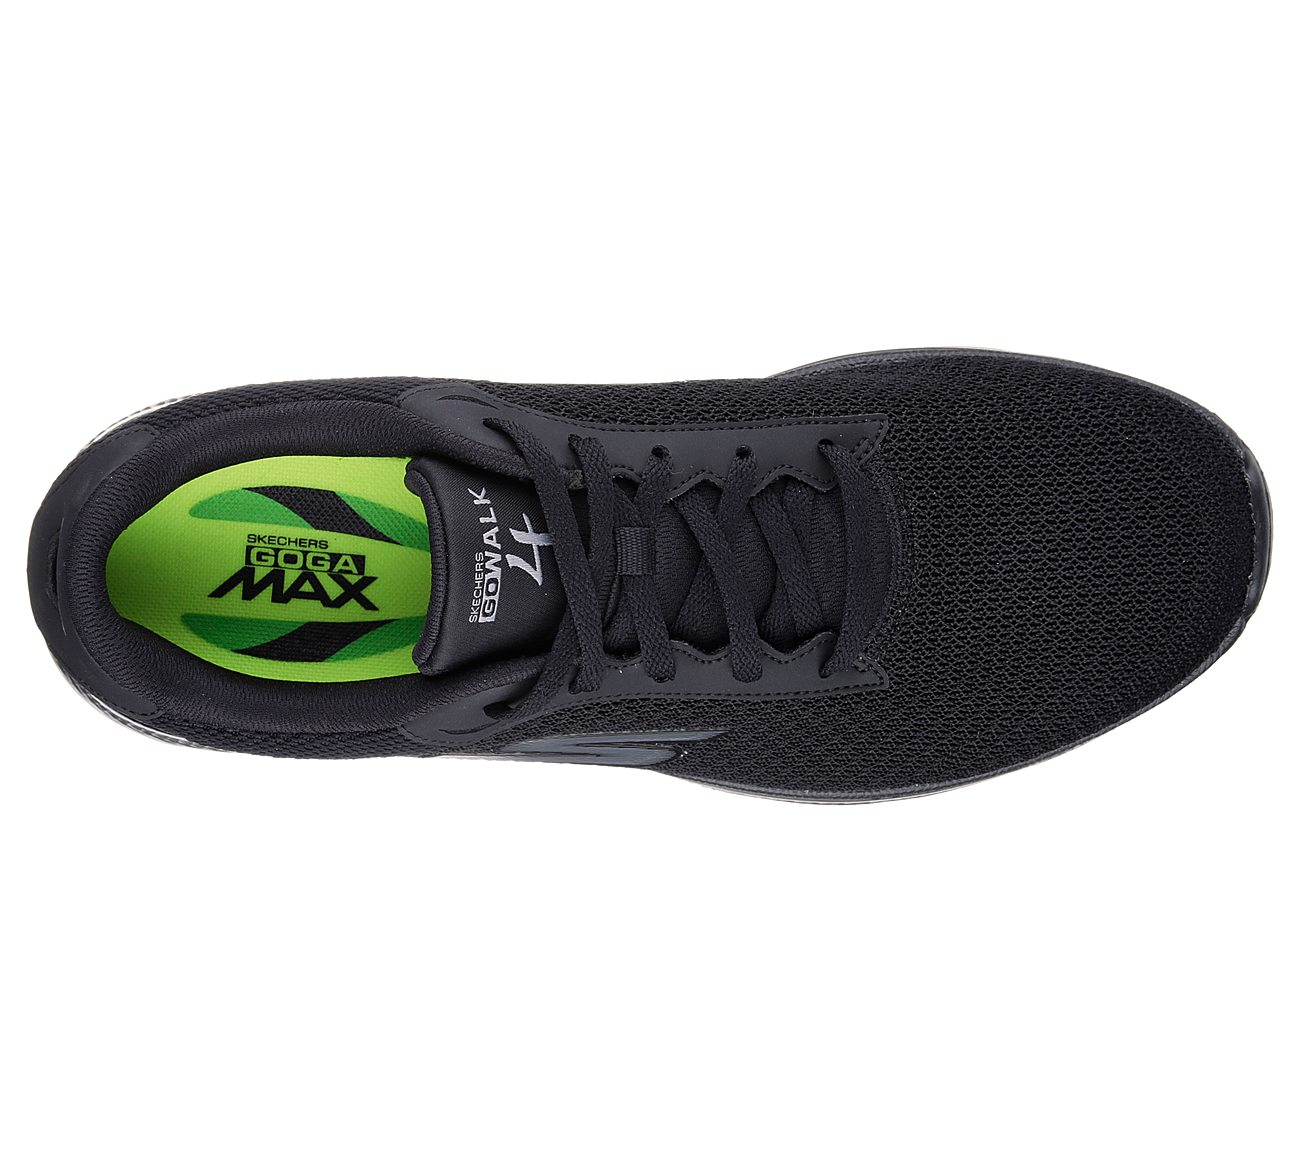 skechers quick fit goga run shoes